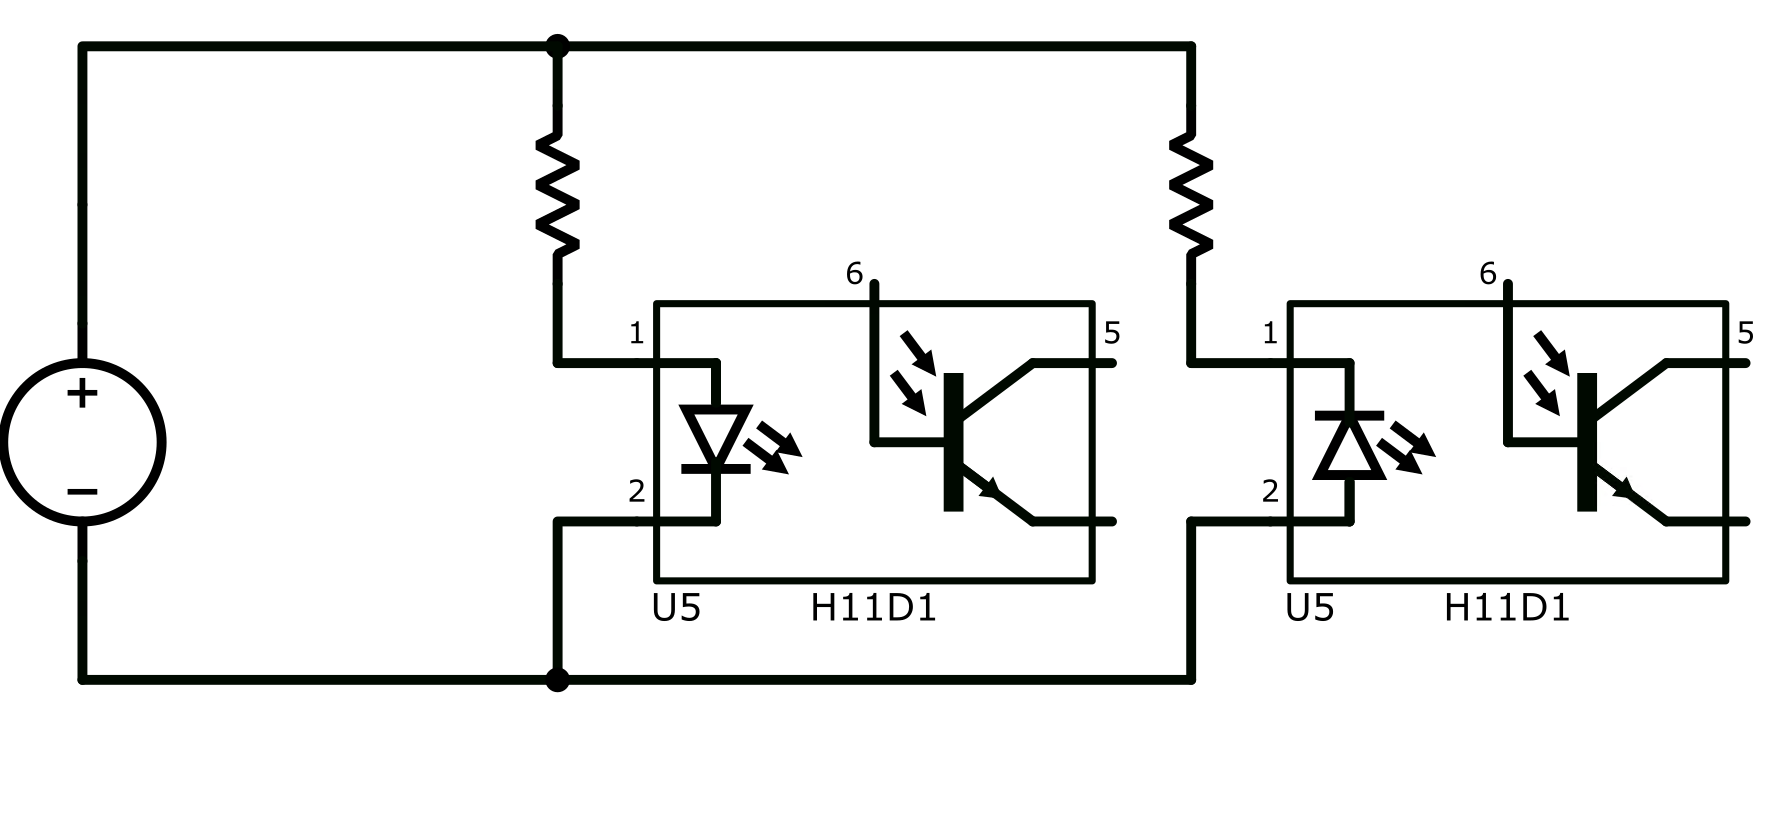 eagle wiring devices